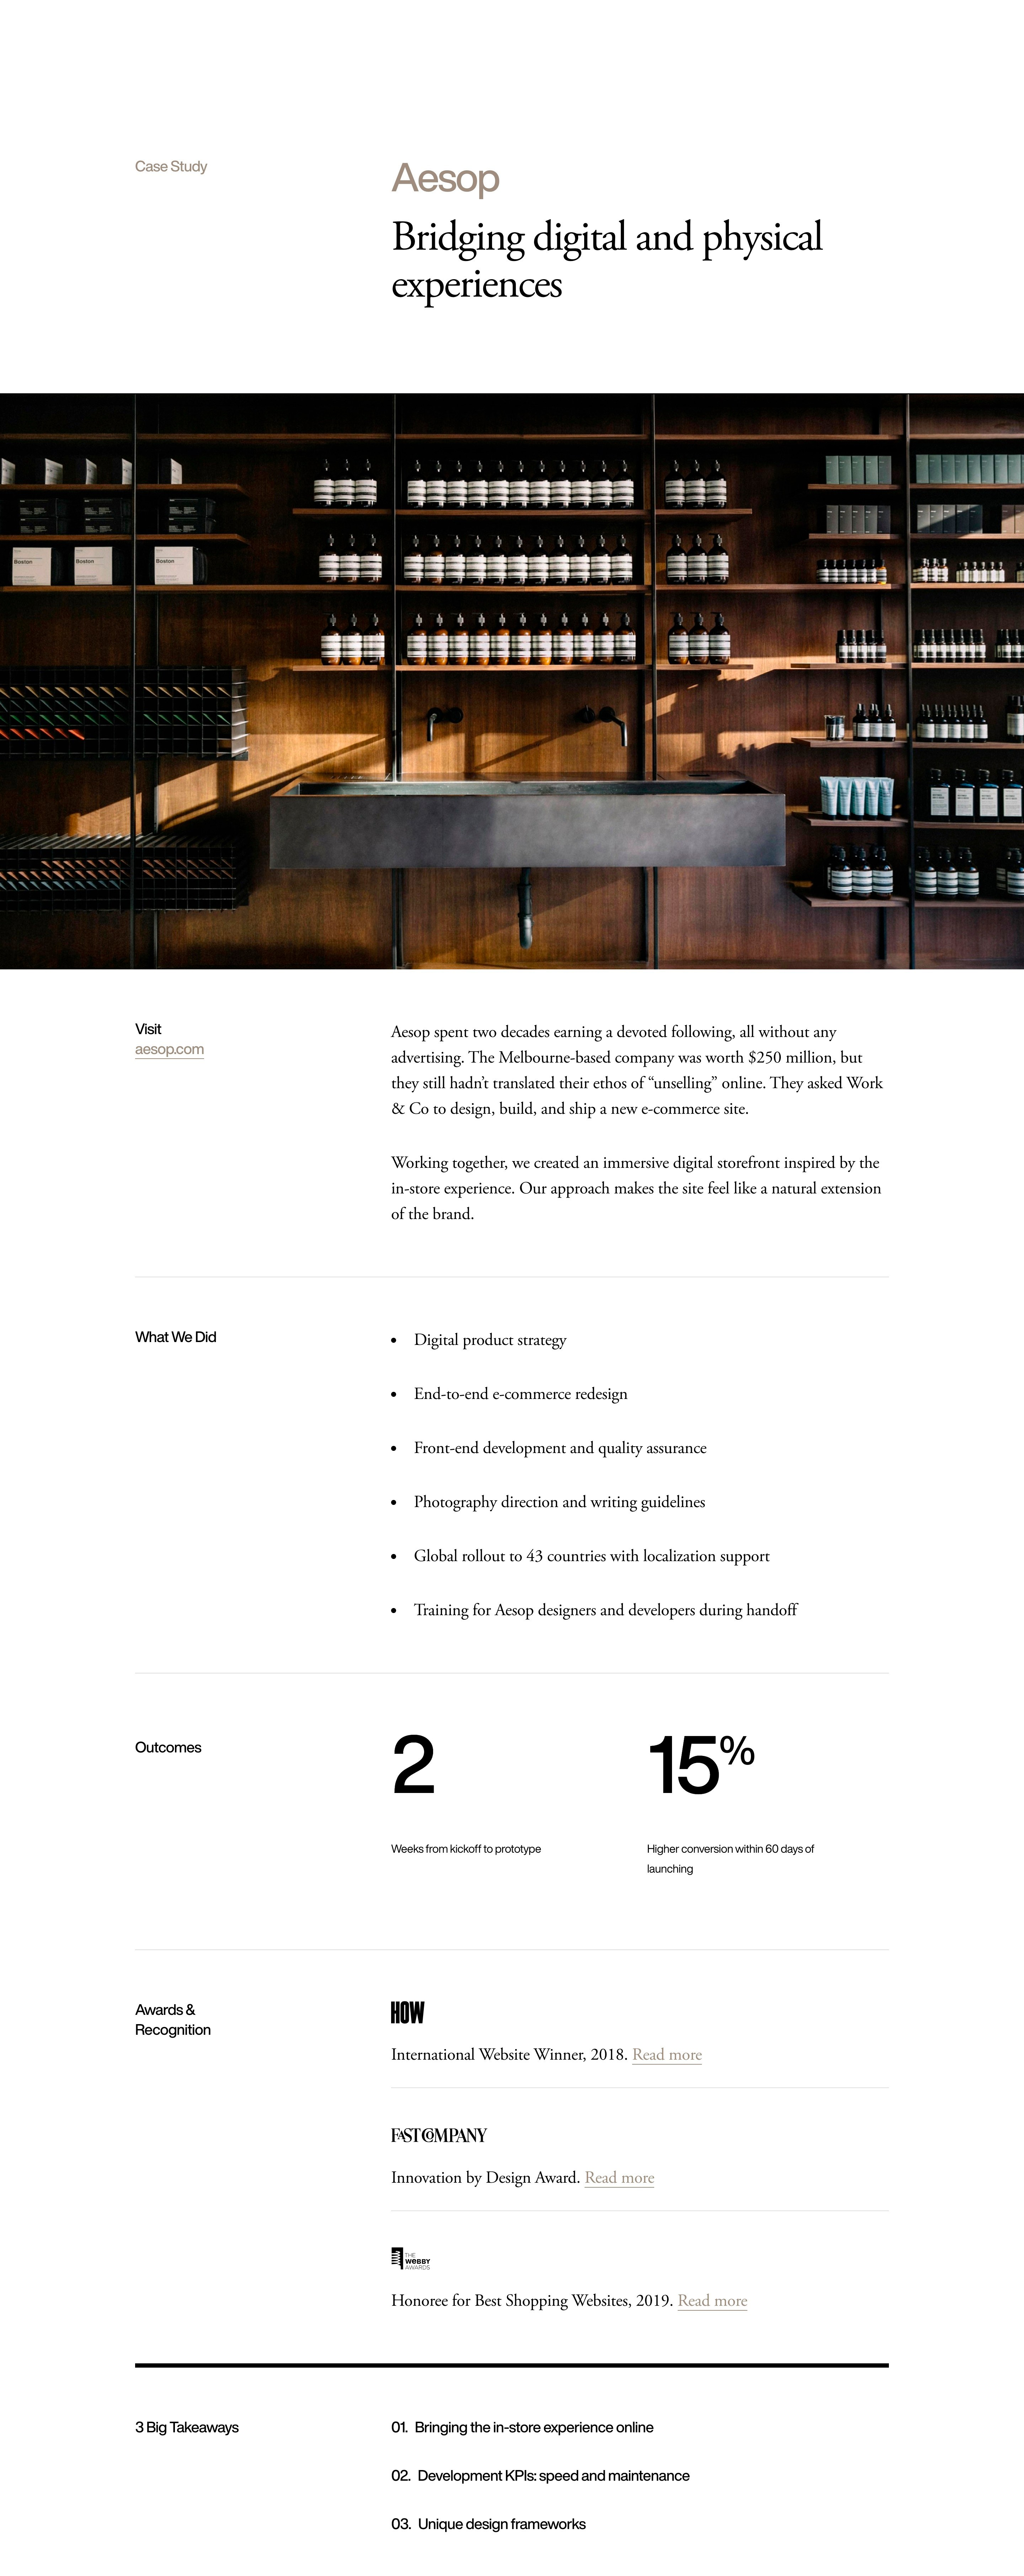 Case Study Page with Outcomes & Awards